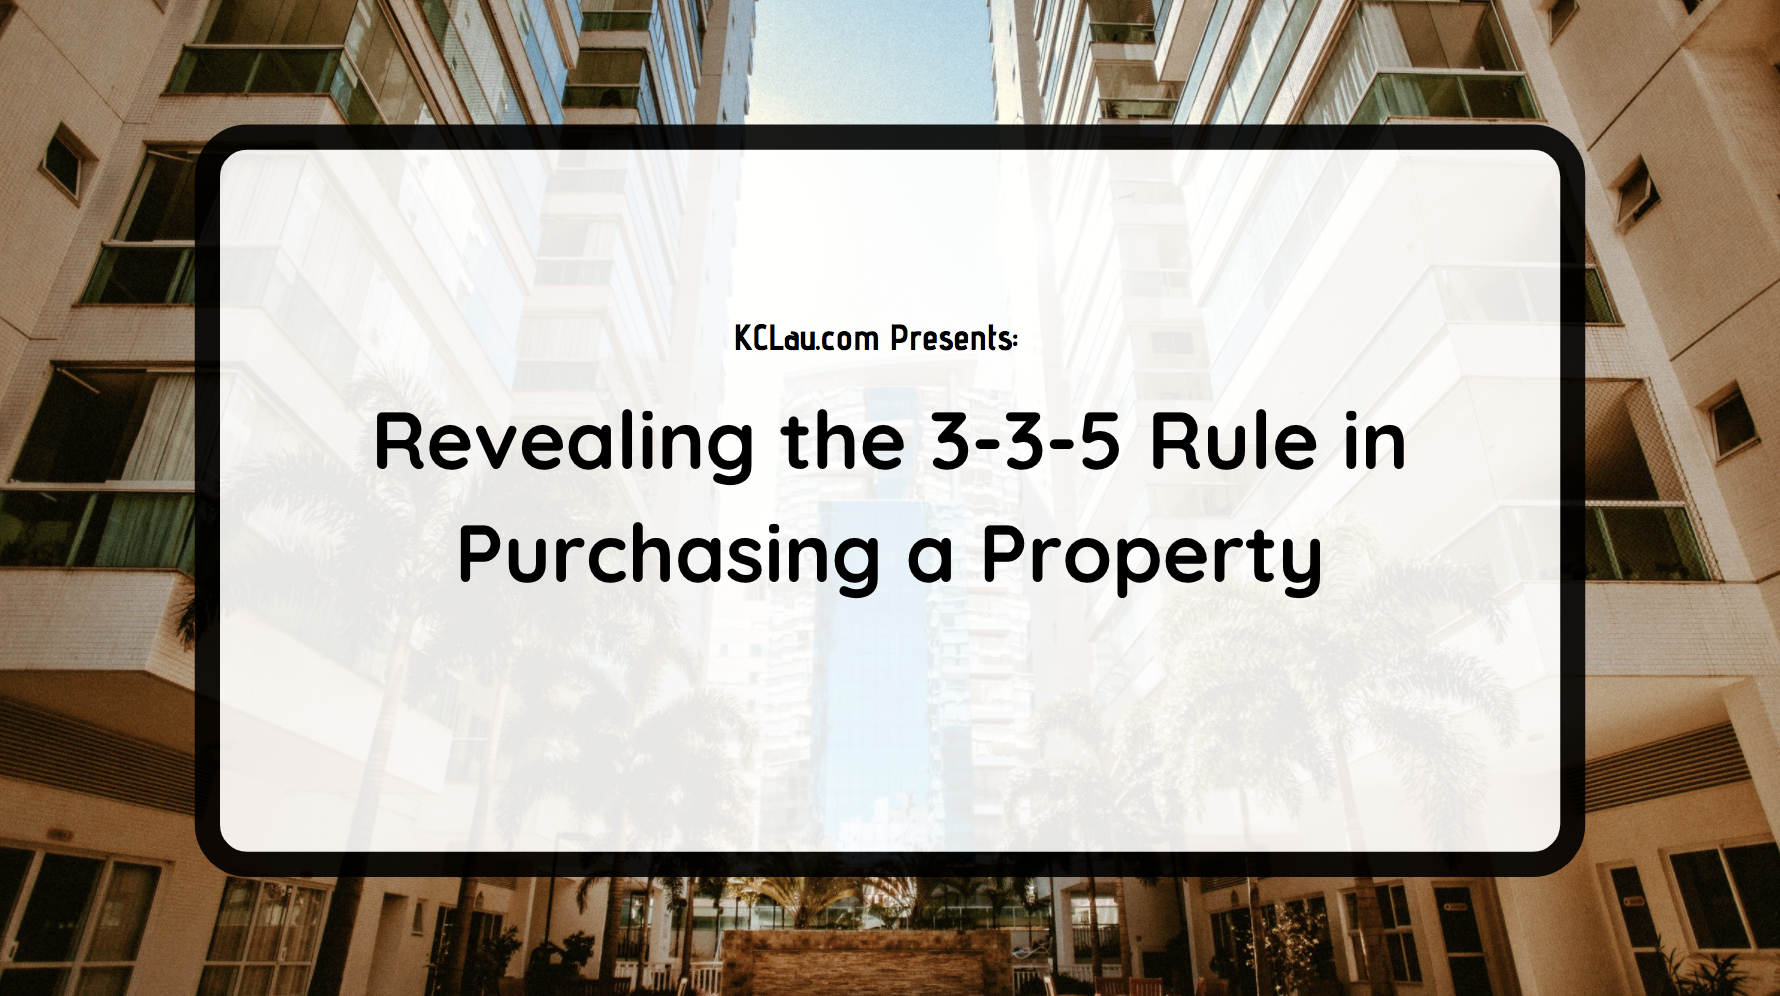 Revealing the 3-3-5 Rule in Purchasing a Property